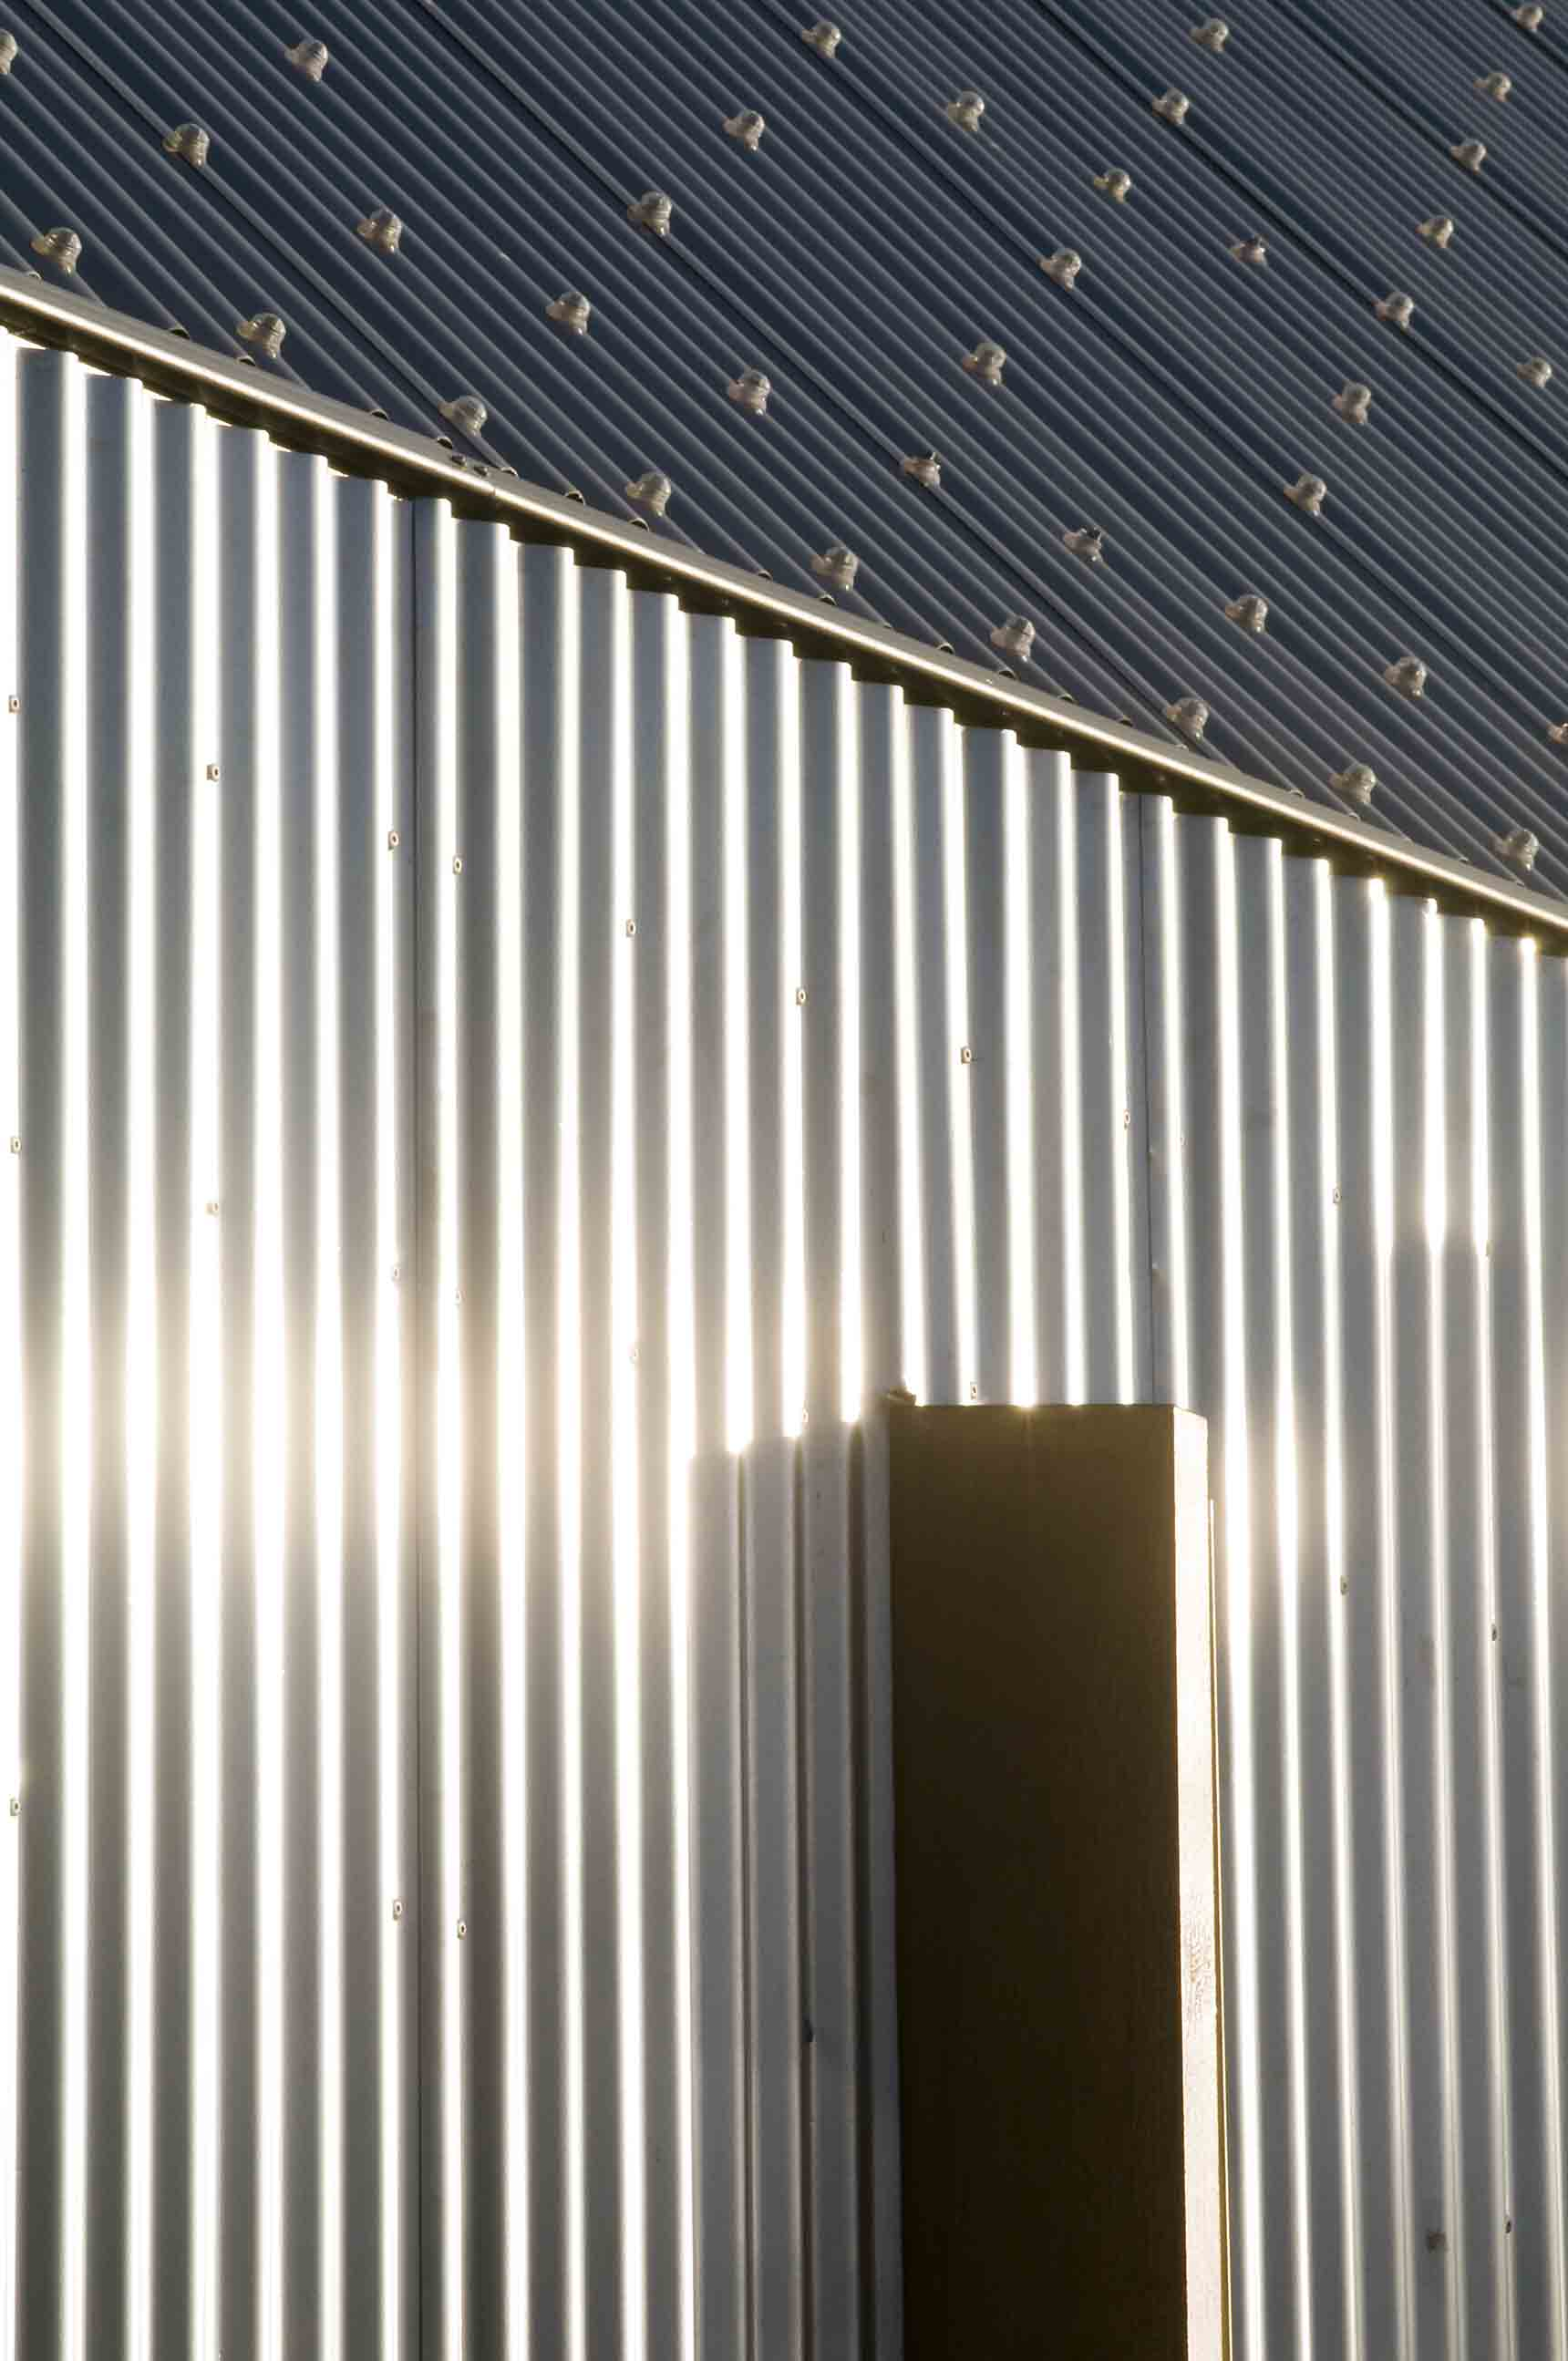 Sunlight reflecting brightly off corrugated metal cladding